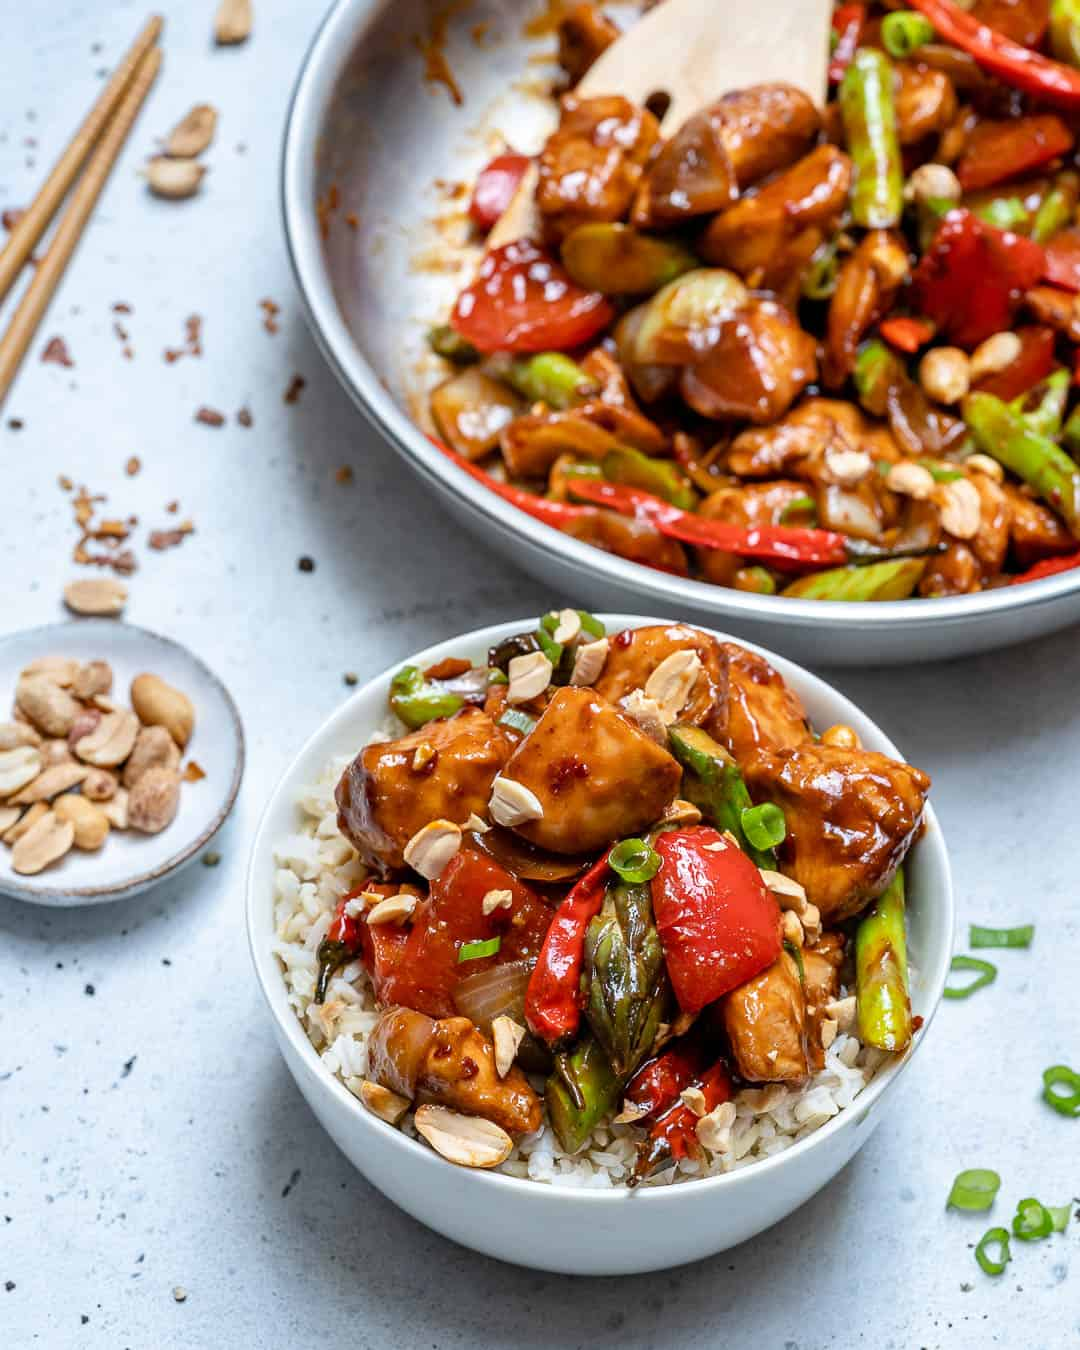 classic kung pao chicken recipe over brown rice